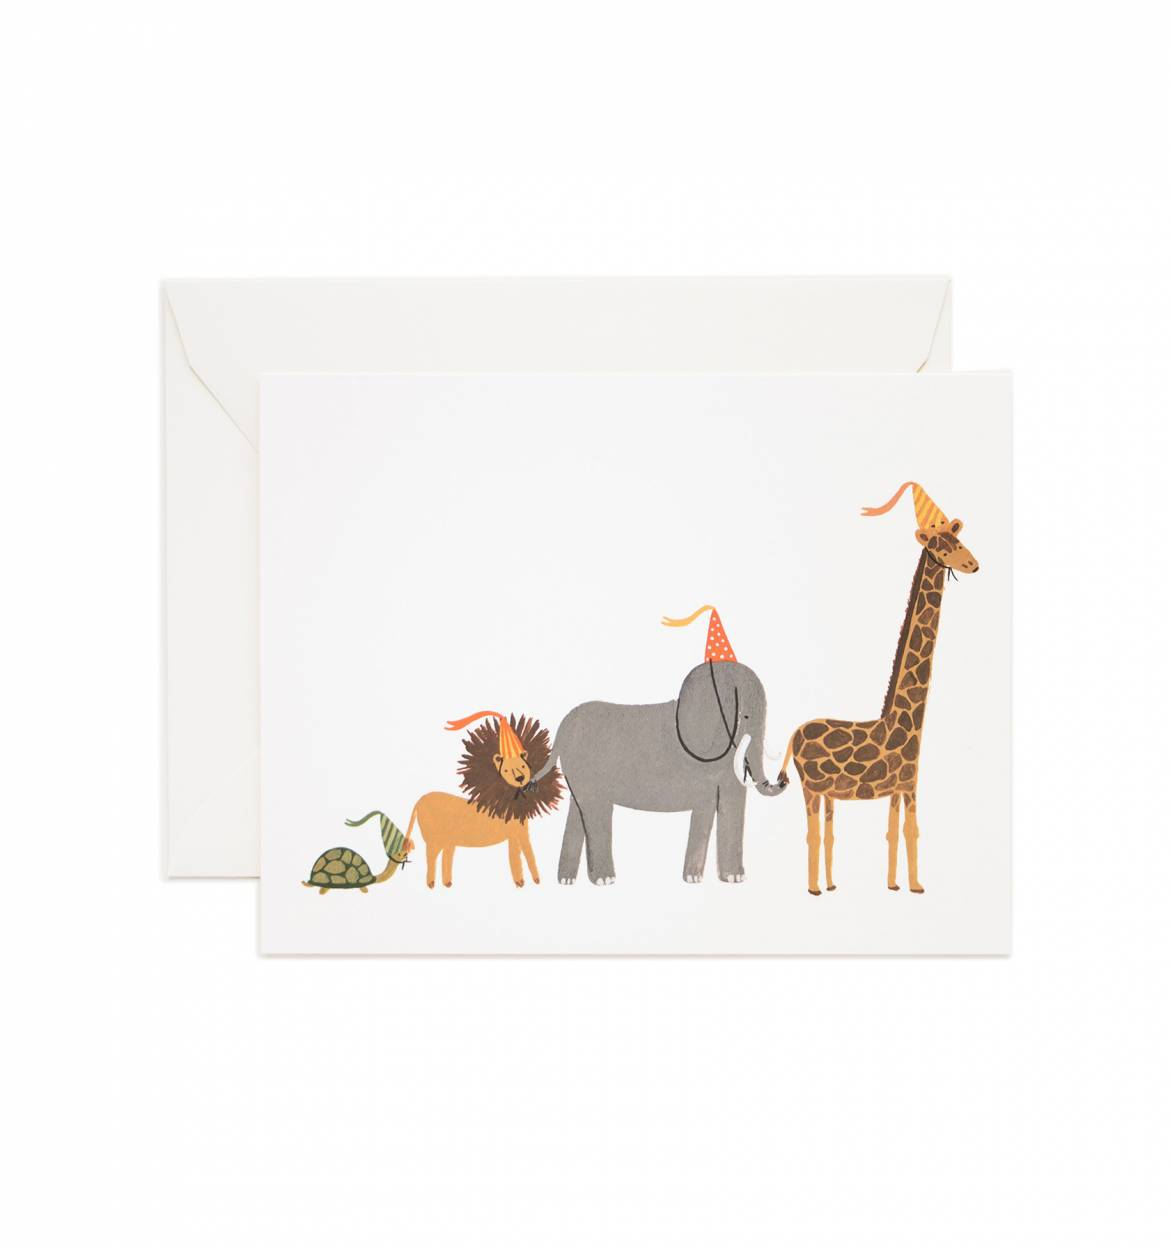 Magnificent Animal Party Invitations Photos - Invitation Card Ideas ...